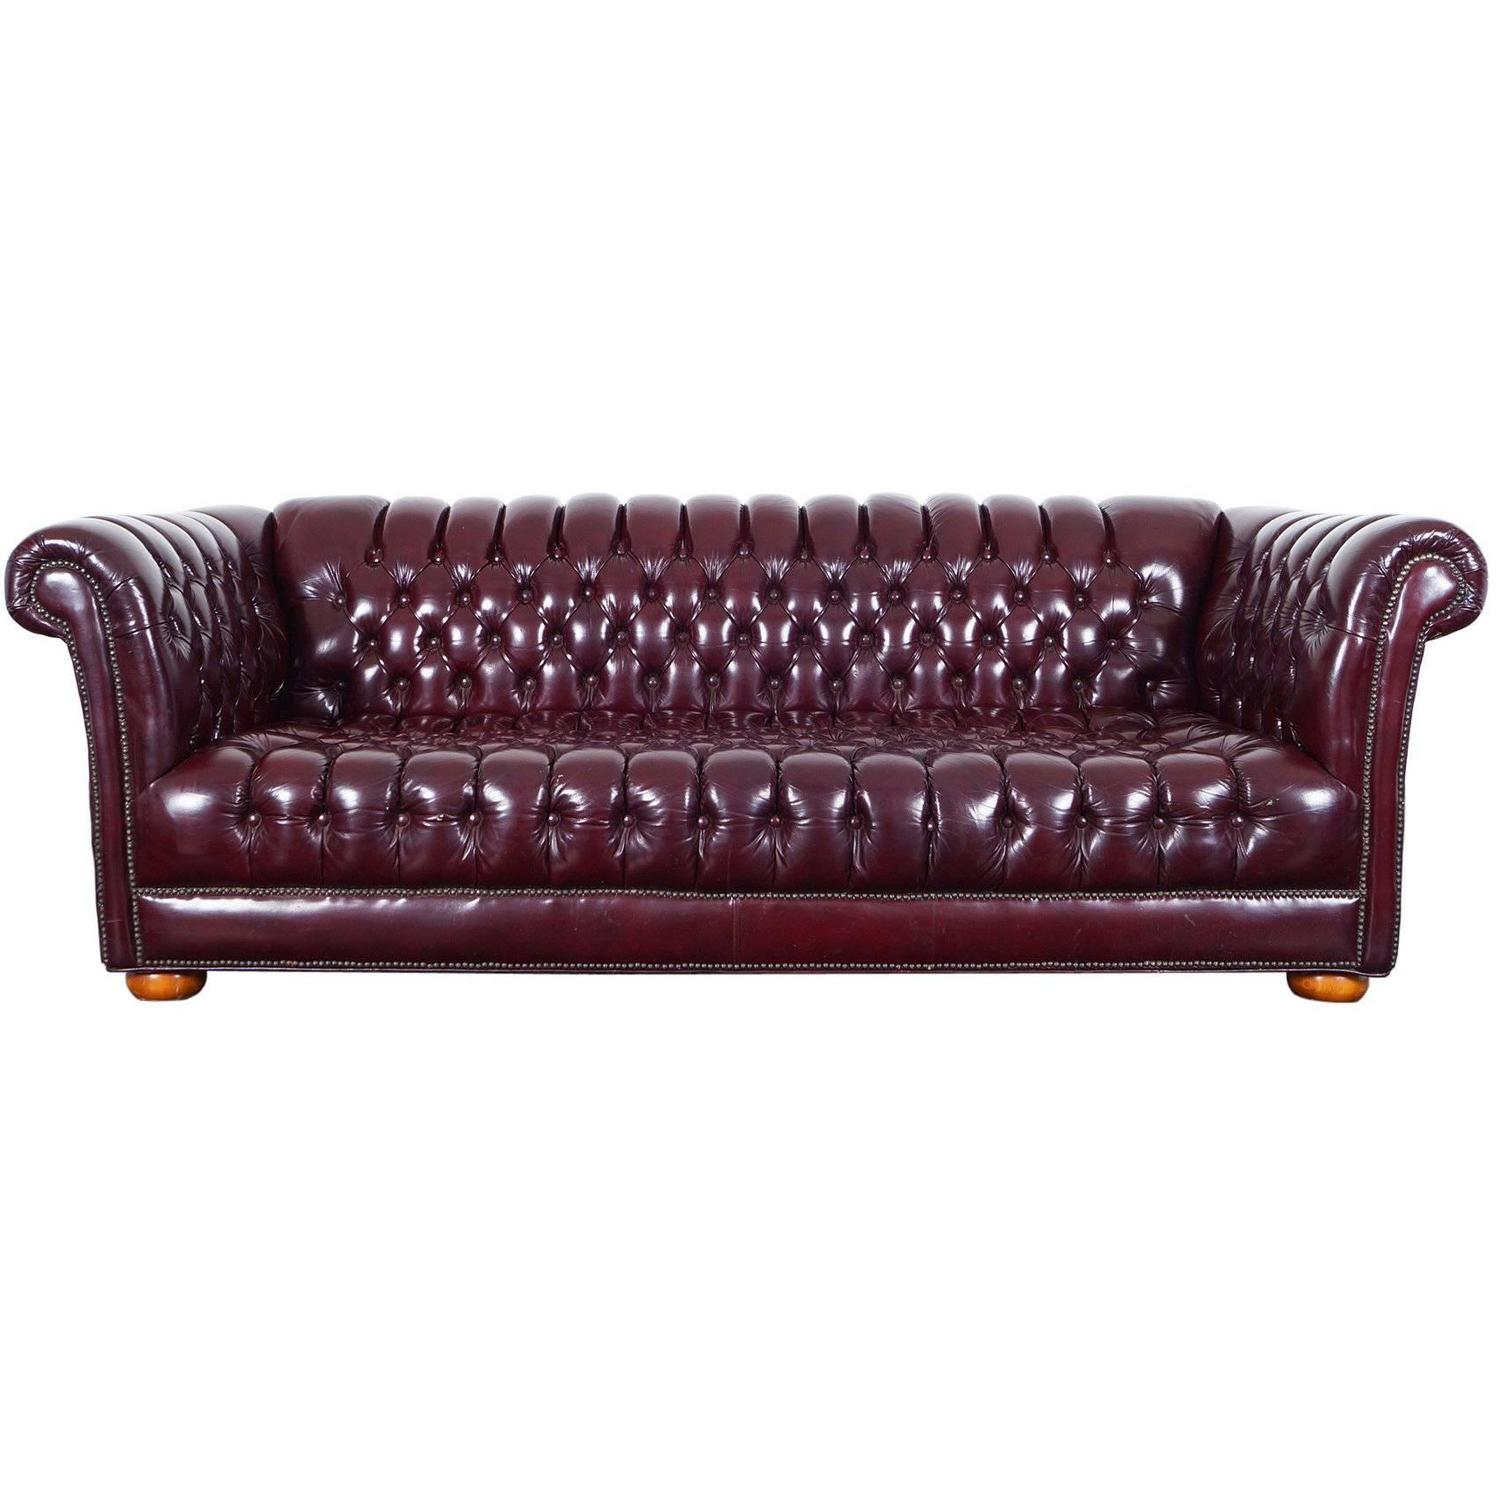 Vintage Burgundy Leather Chesterfield Sofa For Sale at 1stdibs